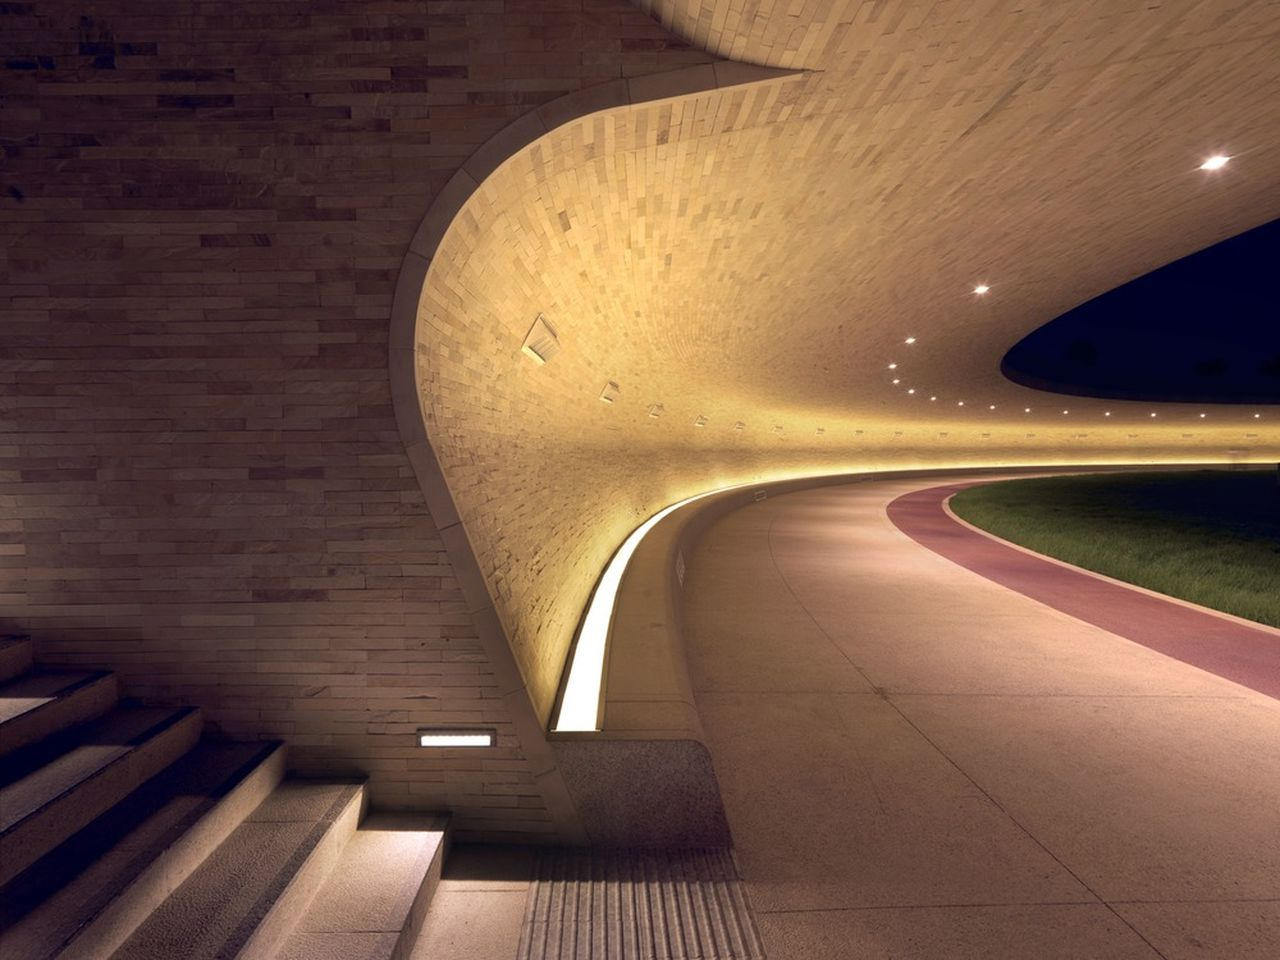 Covered Walkway - Entrance Stair : Photo credit © Markus Elblaus